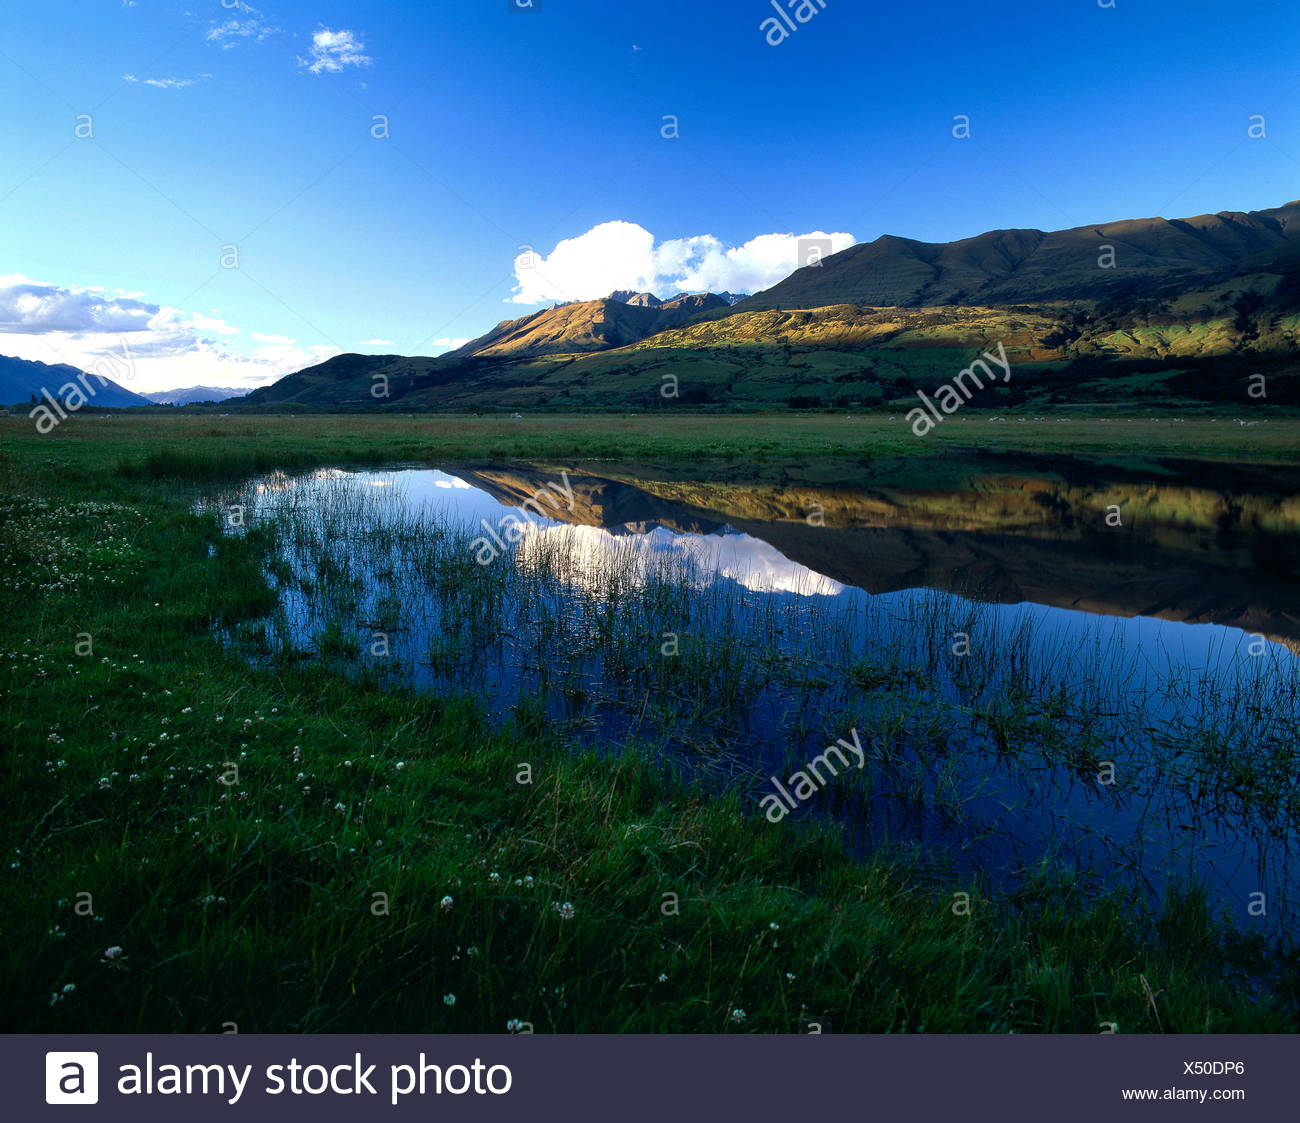 New Zealand. Queenstown Region. Hills reflected in valley lake in late evening shadows. - Stock Image